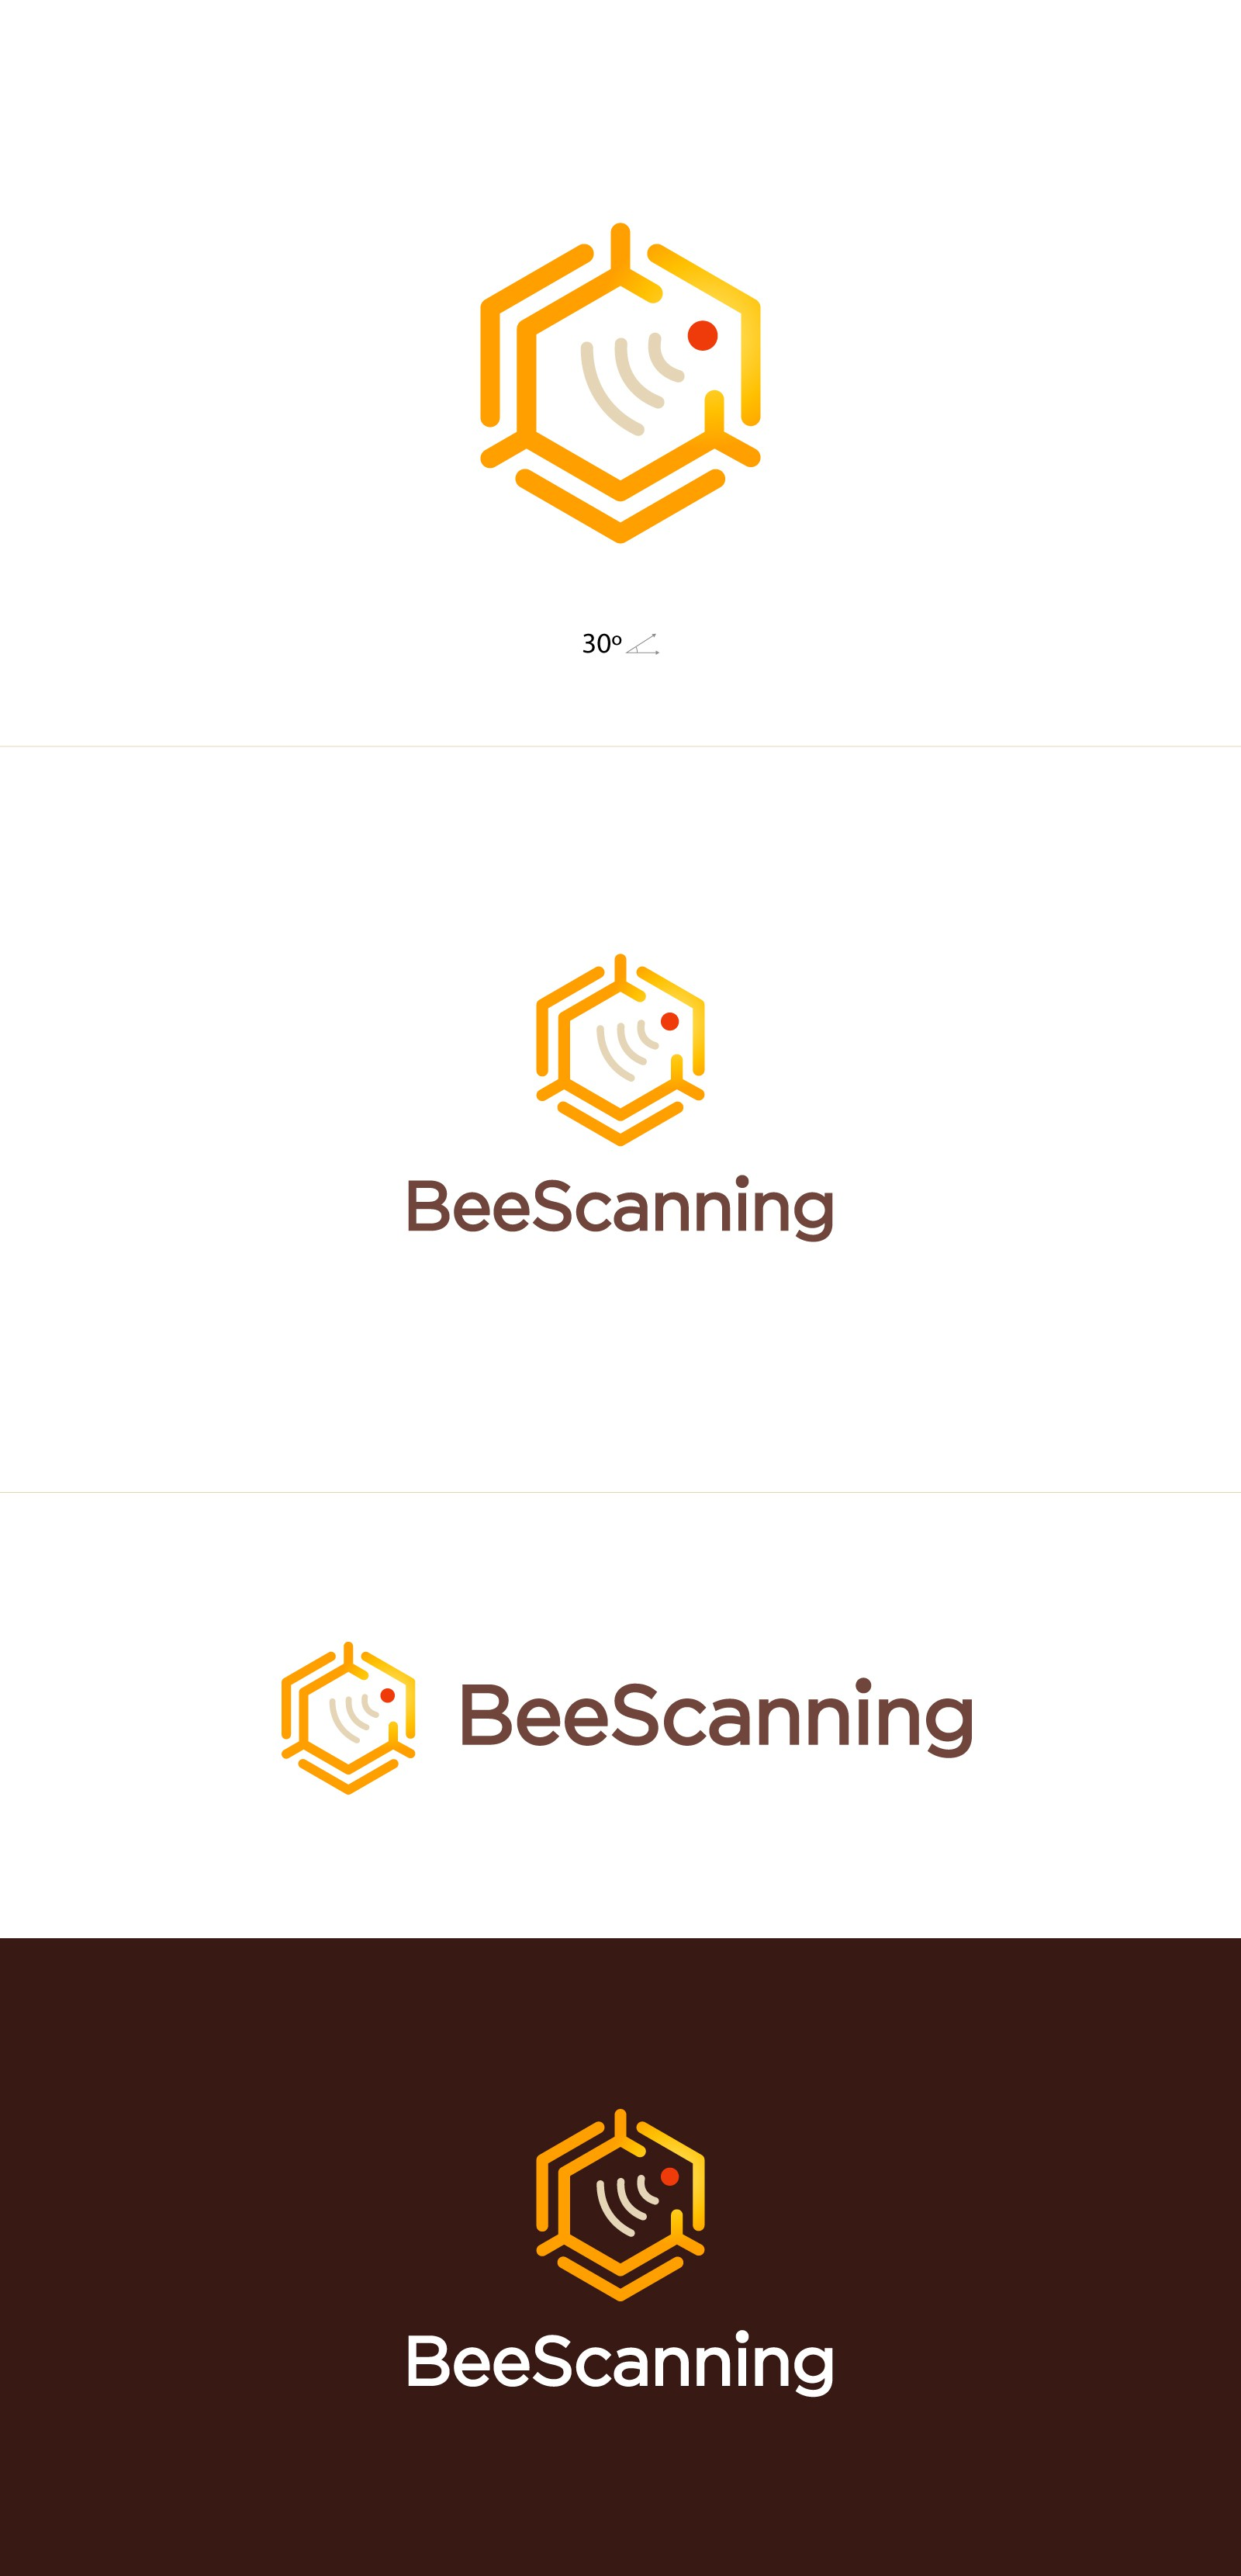 BeeScanning saves bees worldwide with mobile phone and AI.